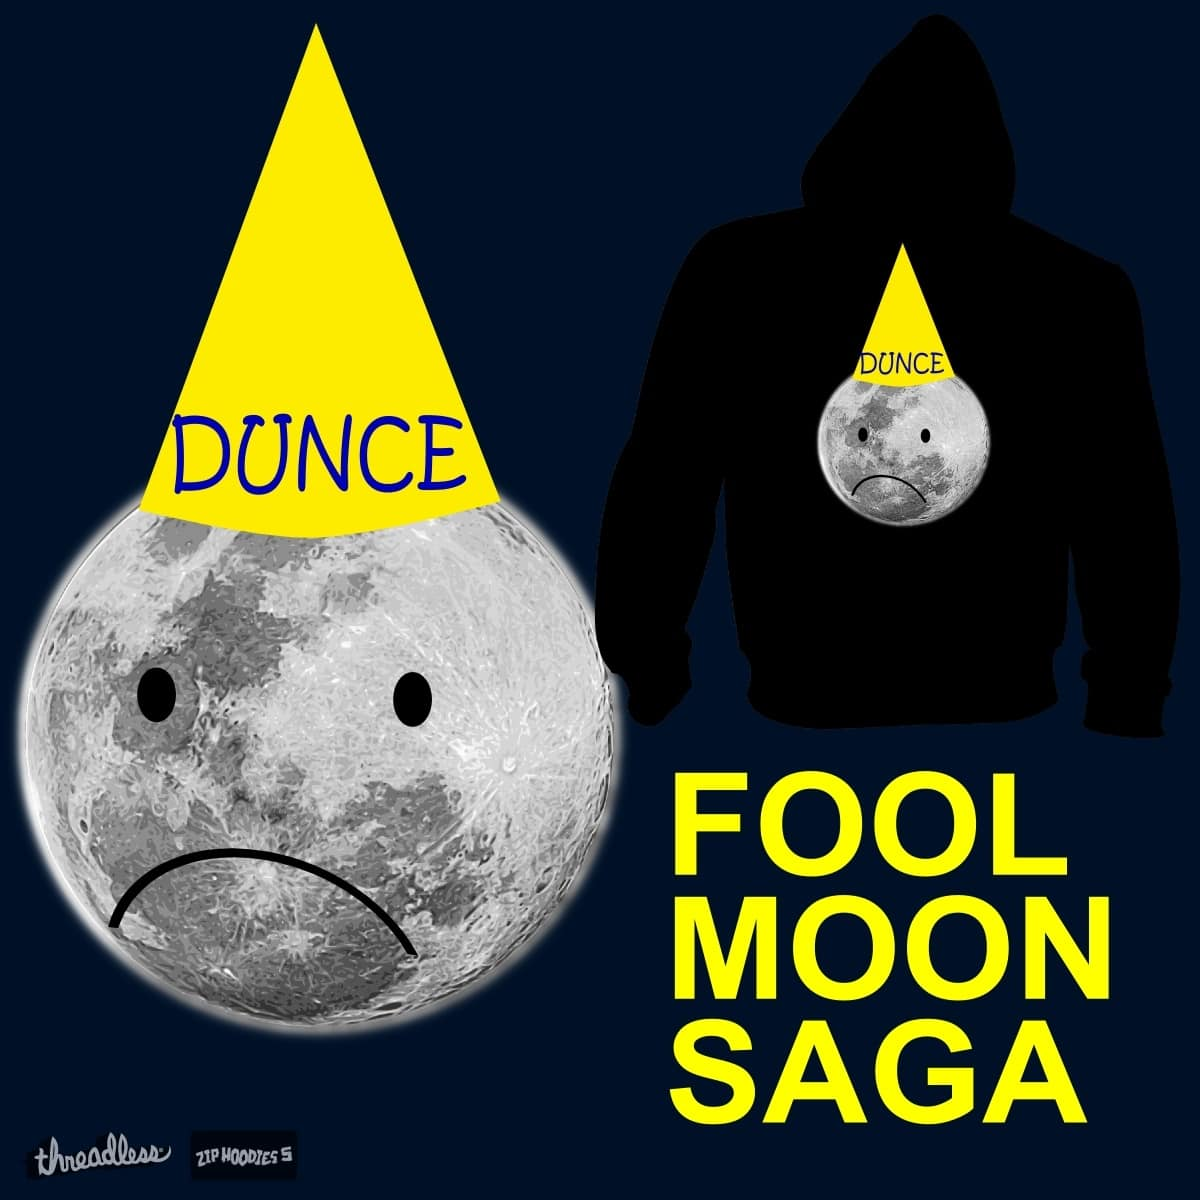 fool moon saga by fabhakim on Threadless